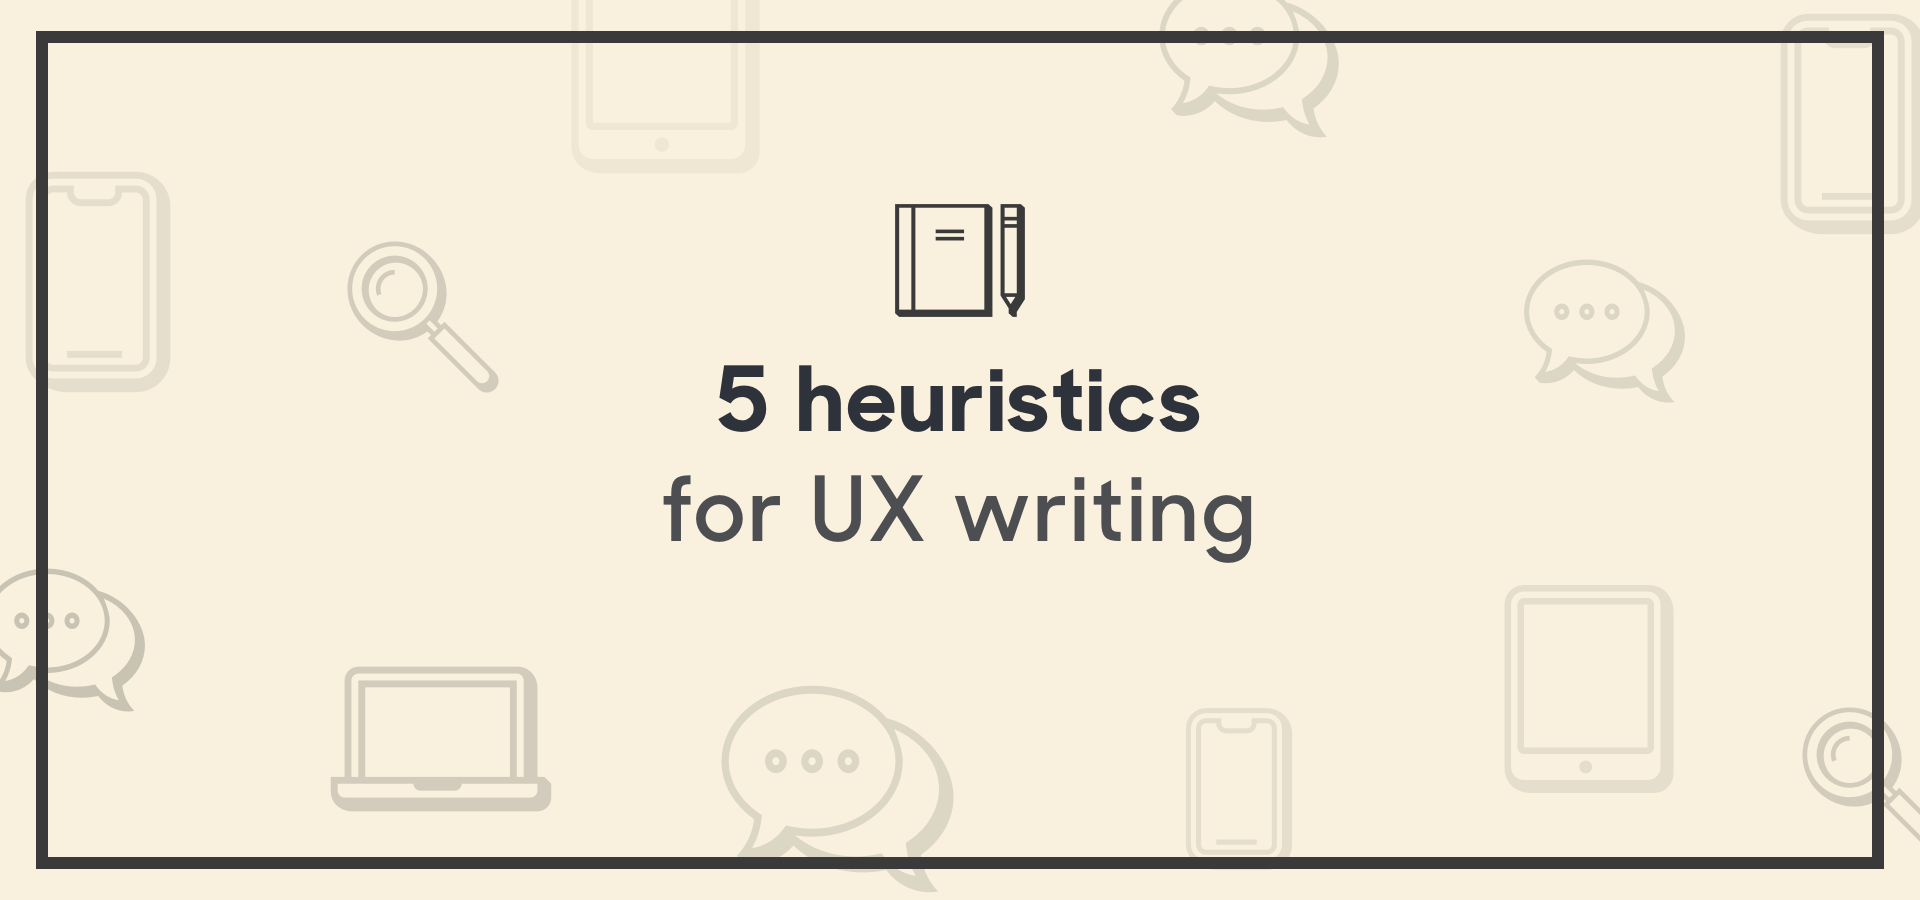 5 heuristics for UX writing image